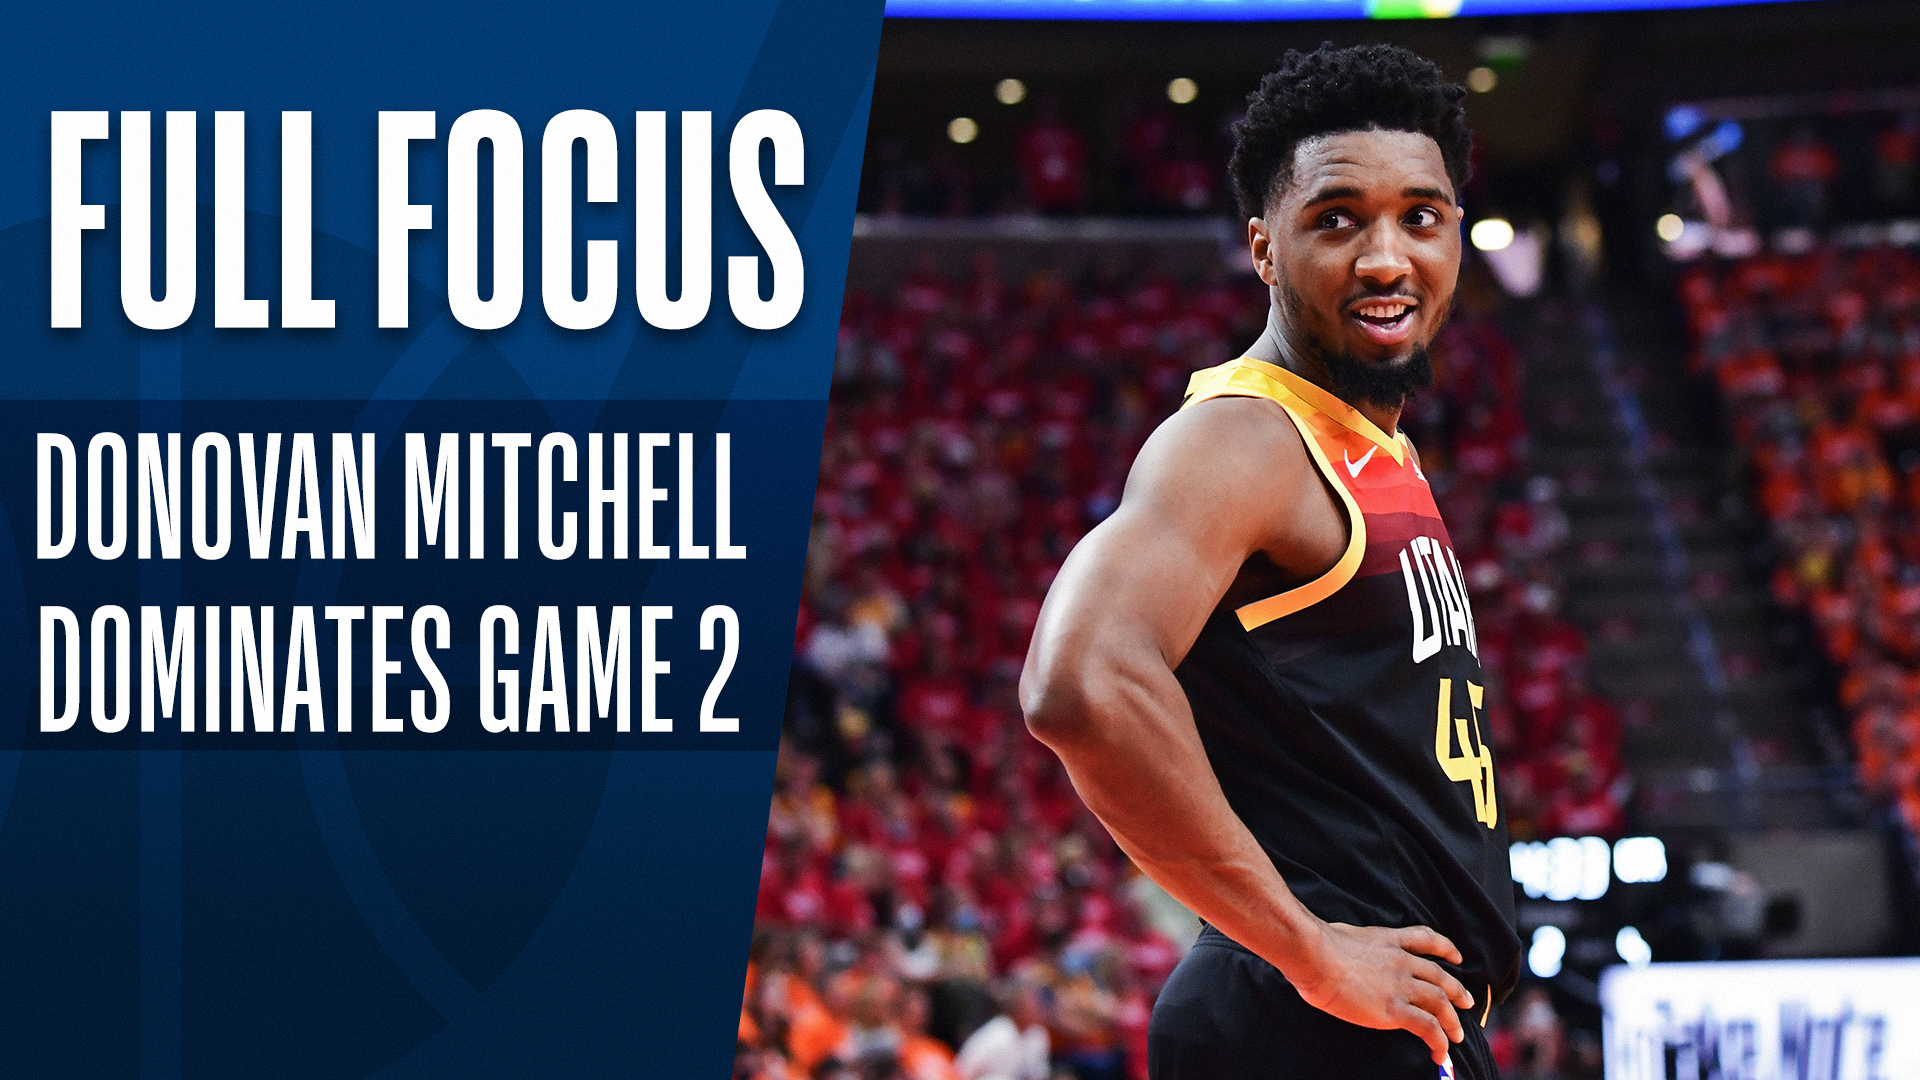 Full Focus: Donovan Mitchell lights up Clippers in Game 2